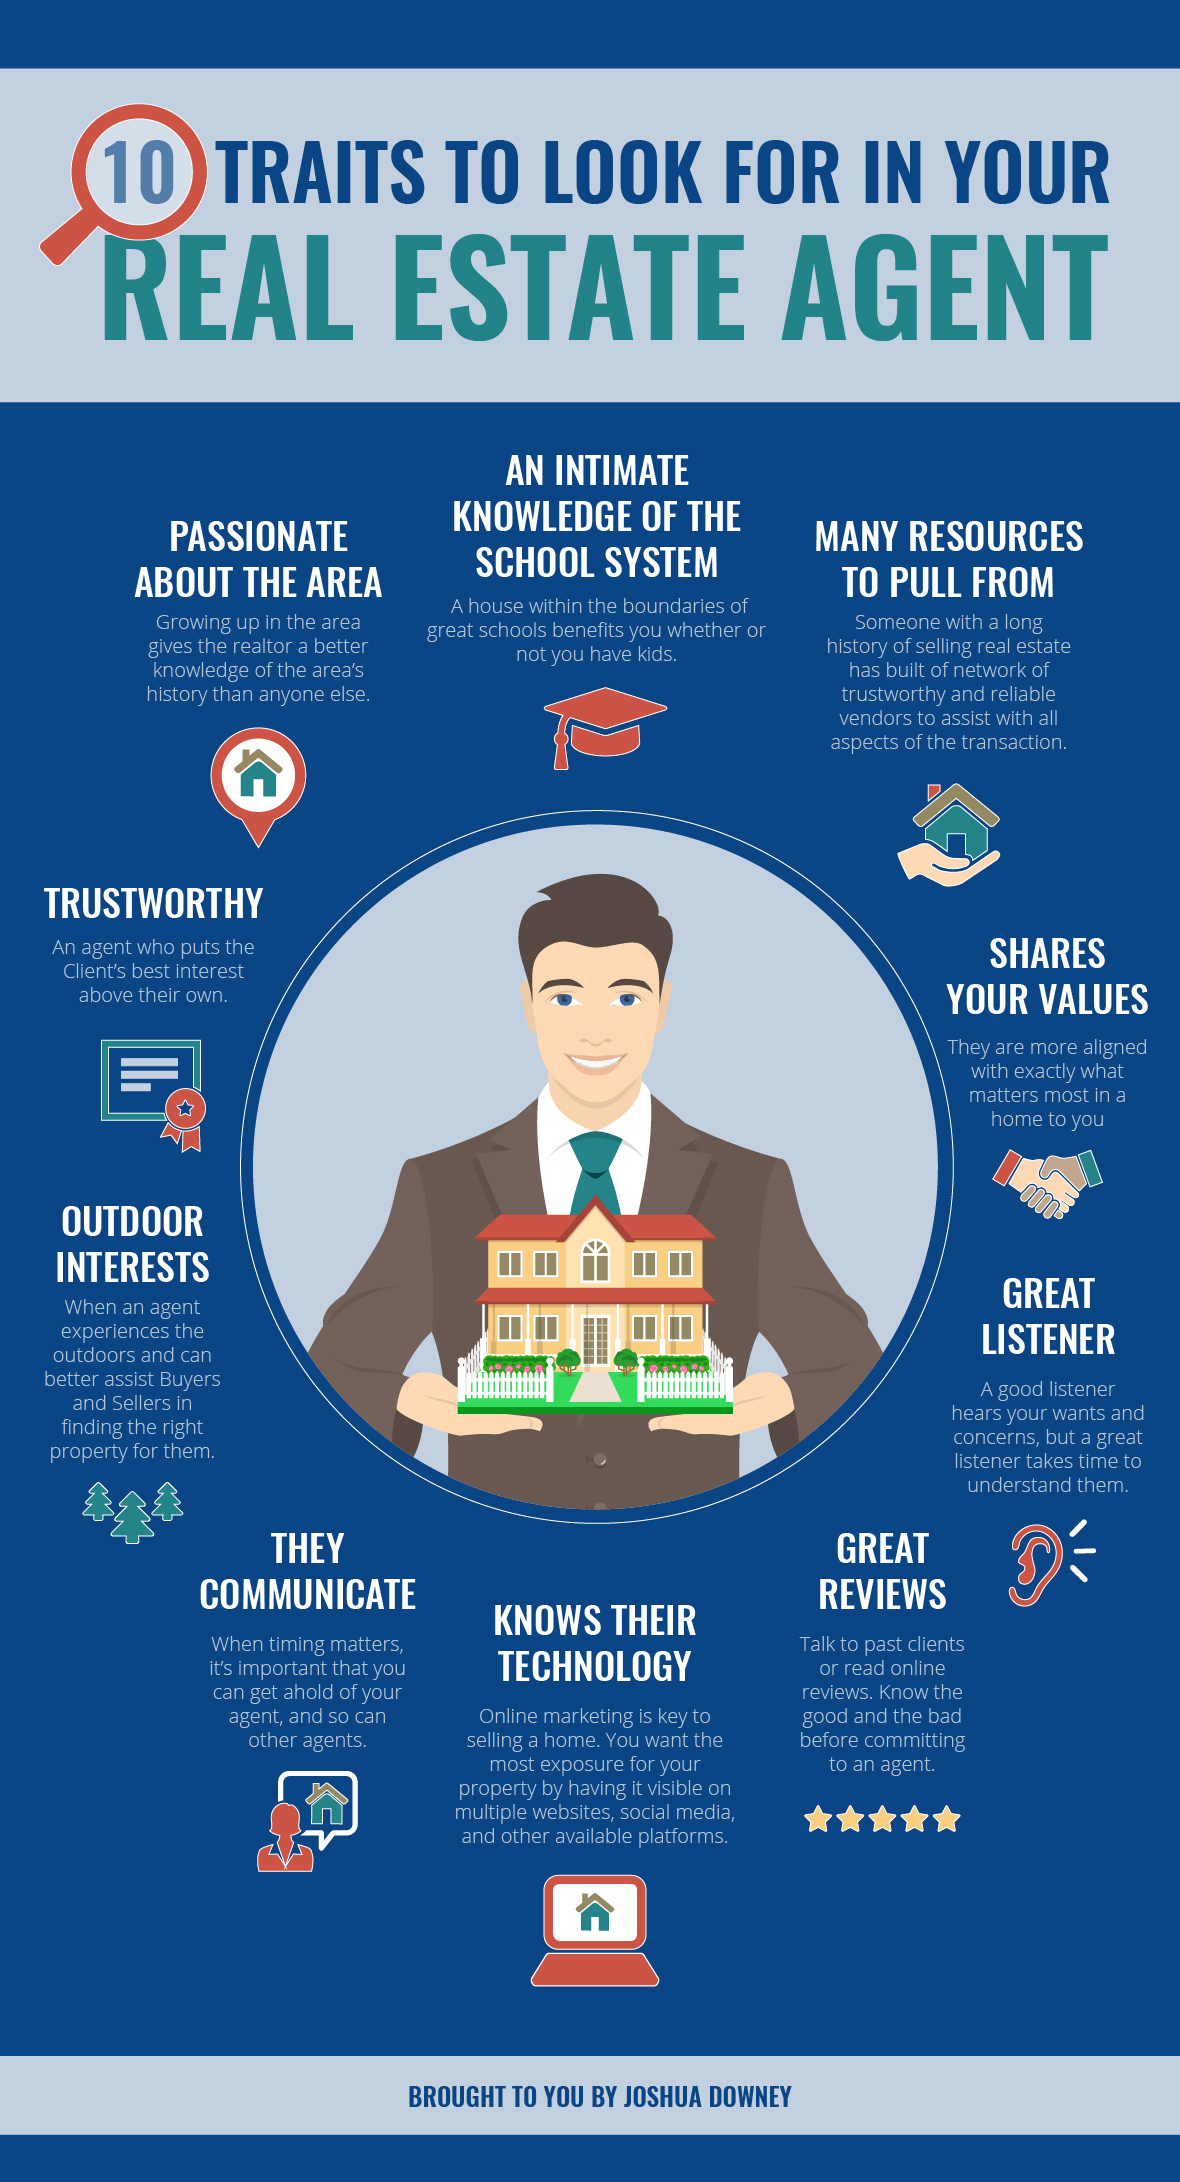 Real Estate Agent Traits